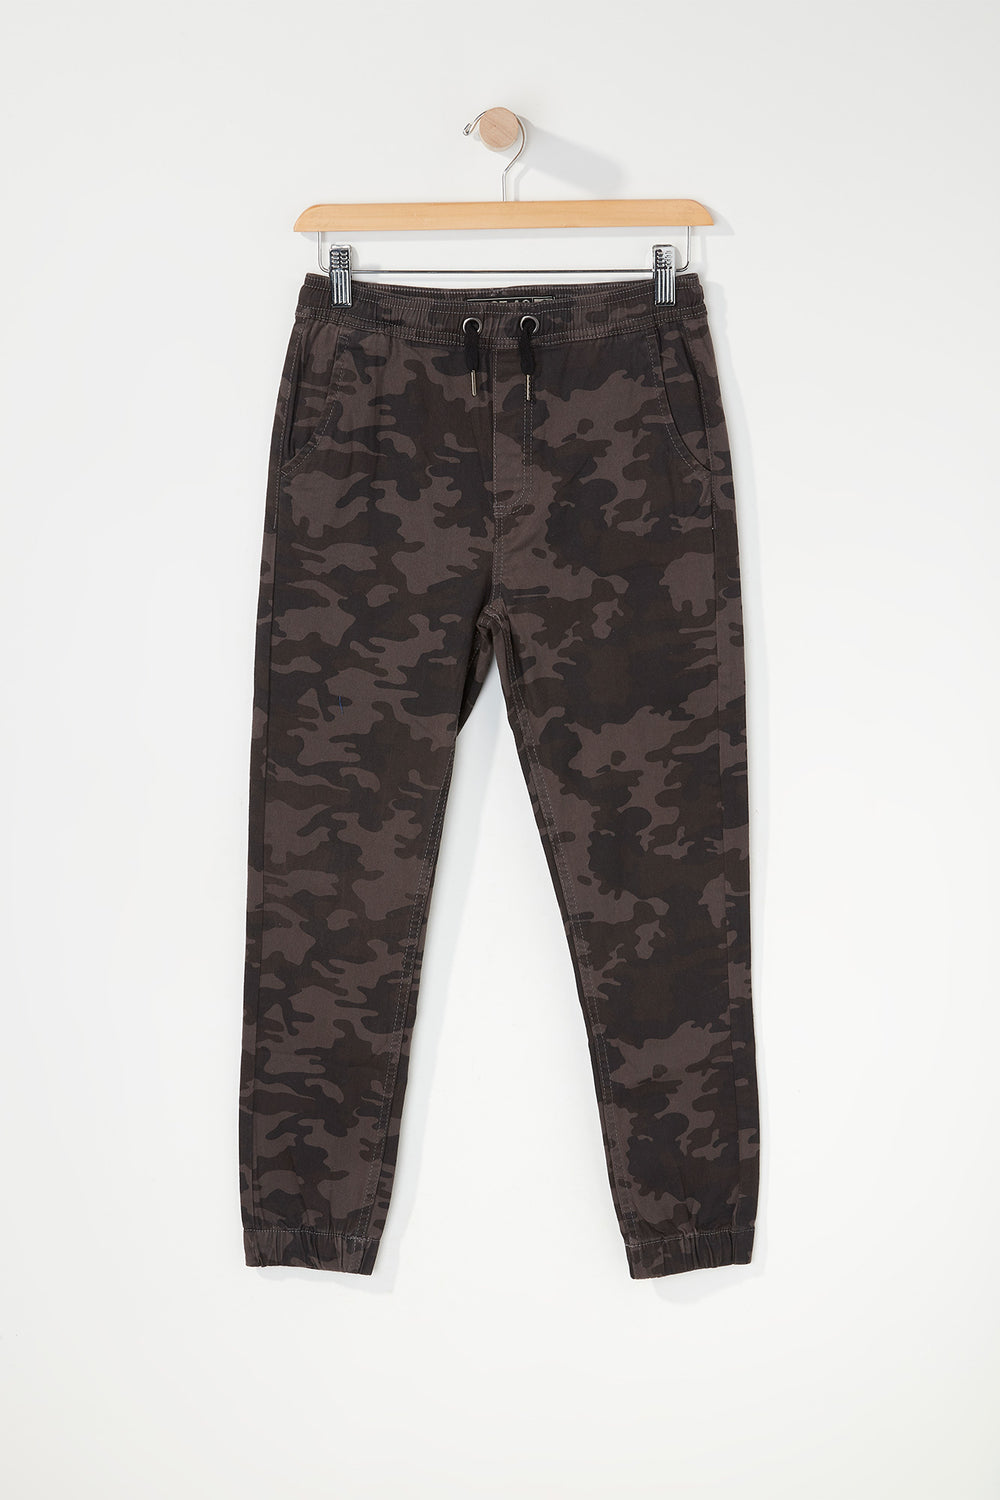 West49 Youth Twill Camo Jogger Gingham